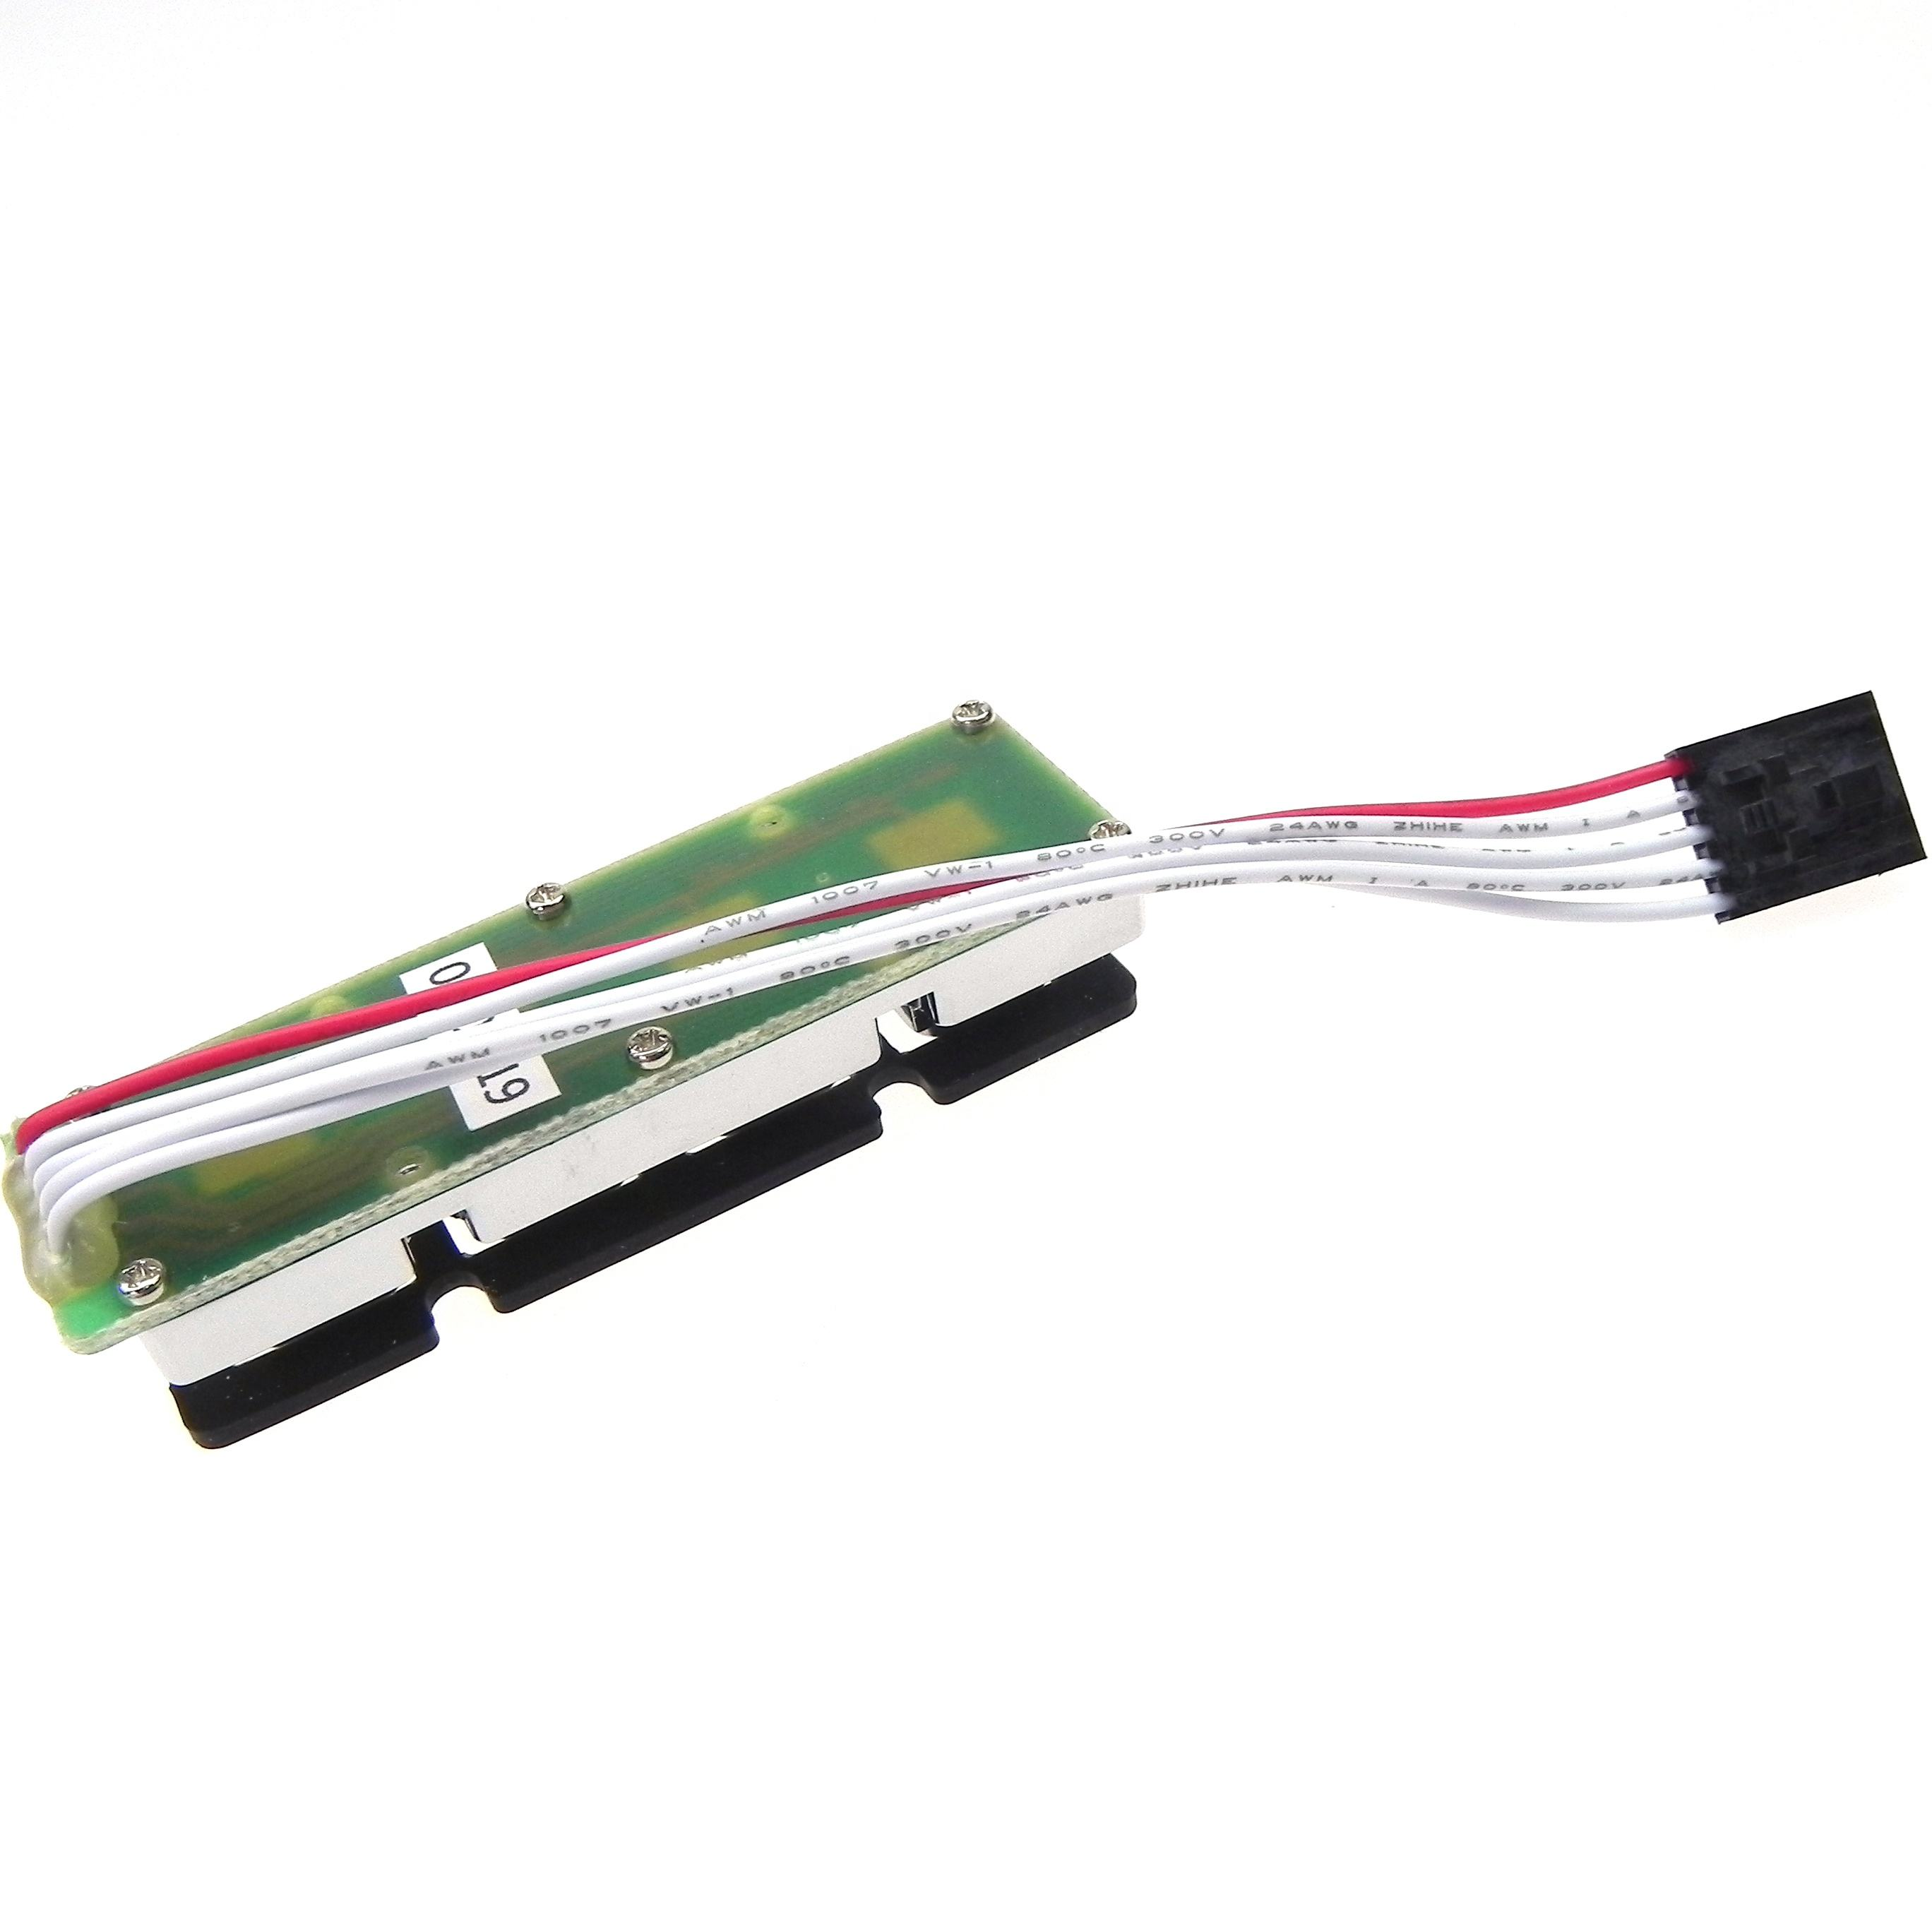 Multipcomp mcak 104BSSSW Button to molex 5-57-9405 connector 5pin 2.5mm electric cables wires cable assembly